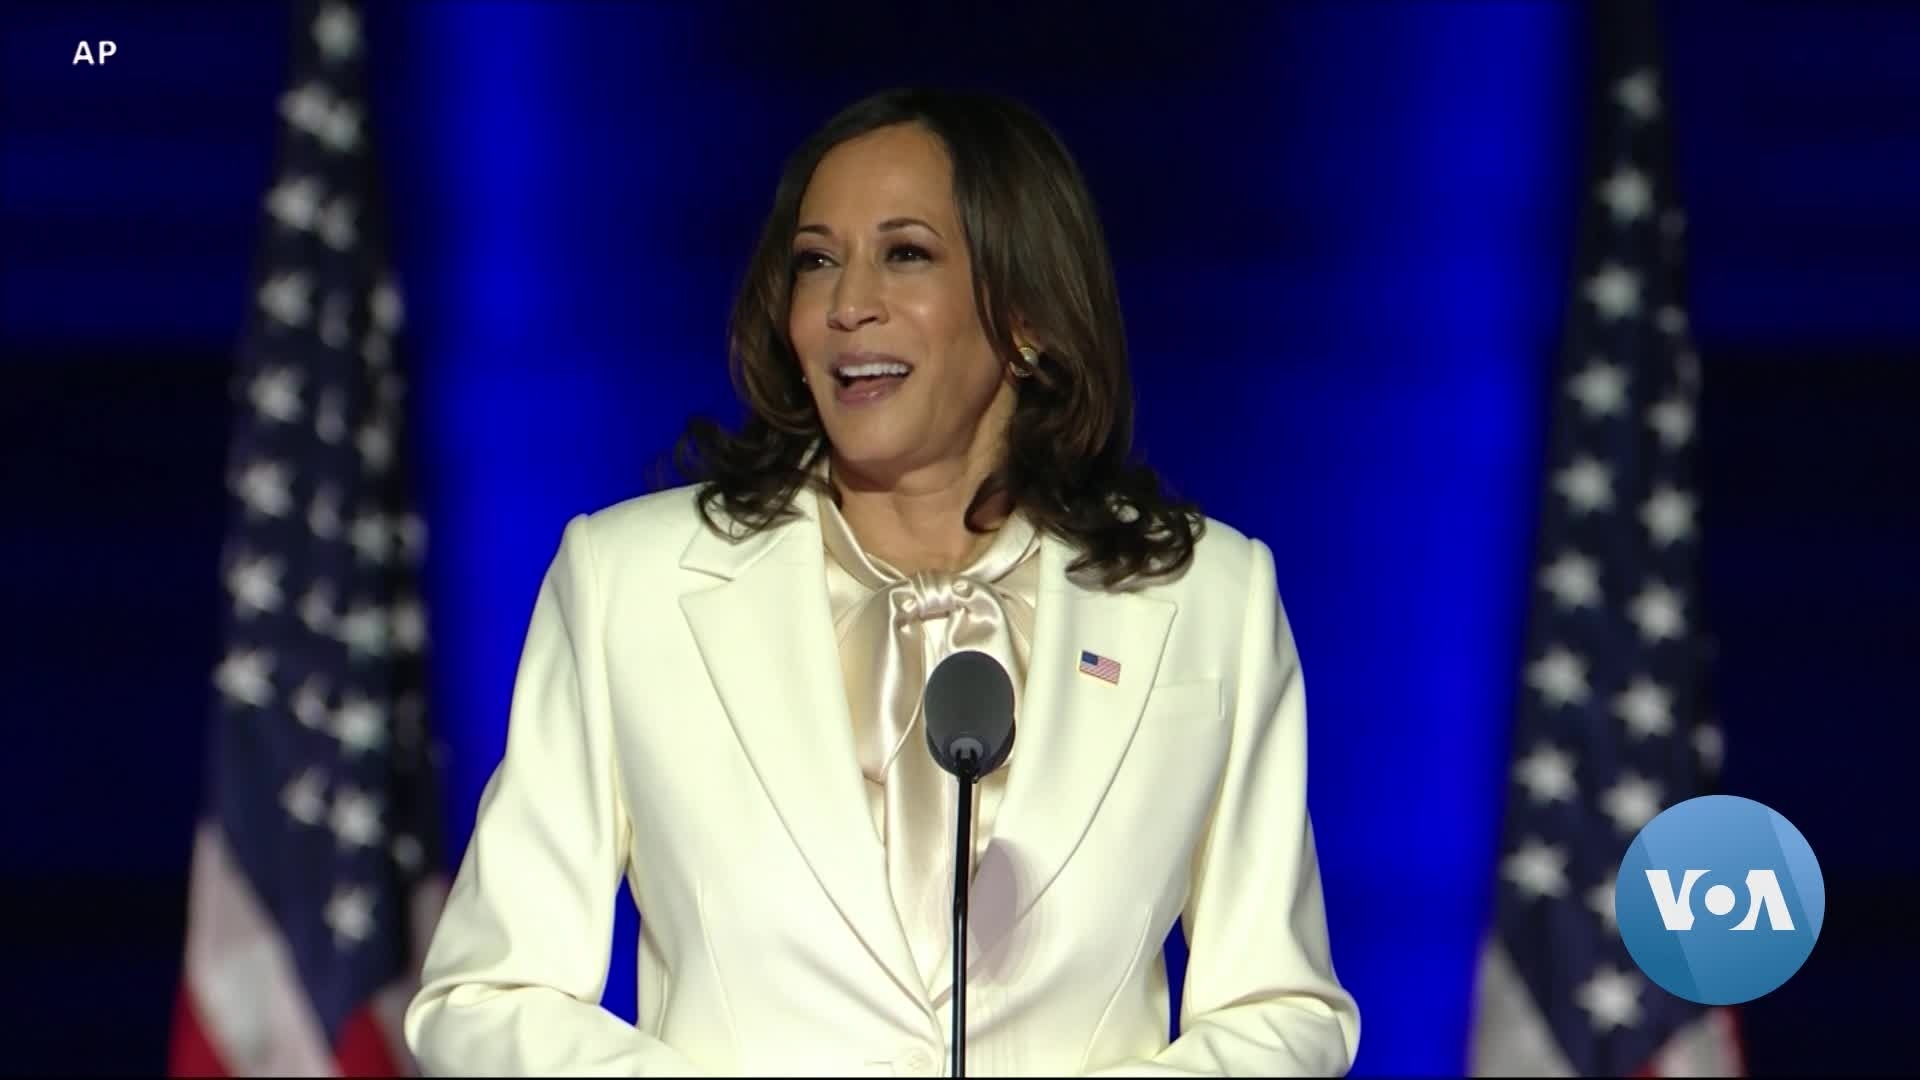 Kamala Harris Makes History Following Rough-and-Tumble of Presidential Campaign